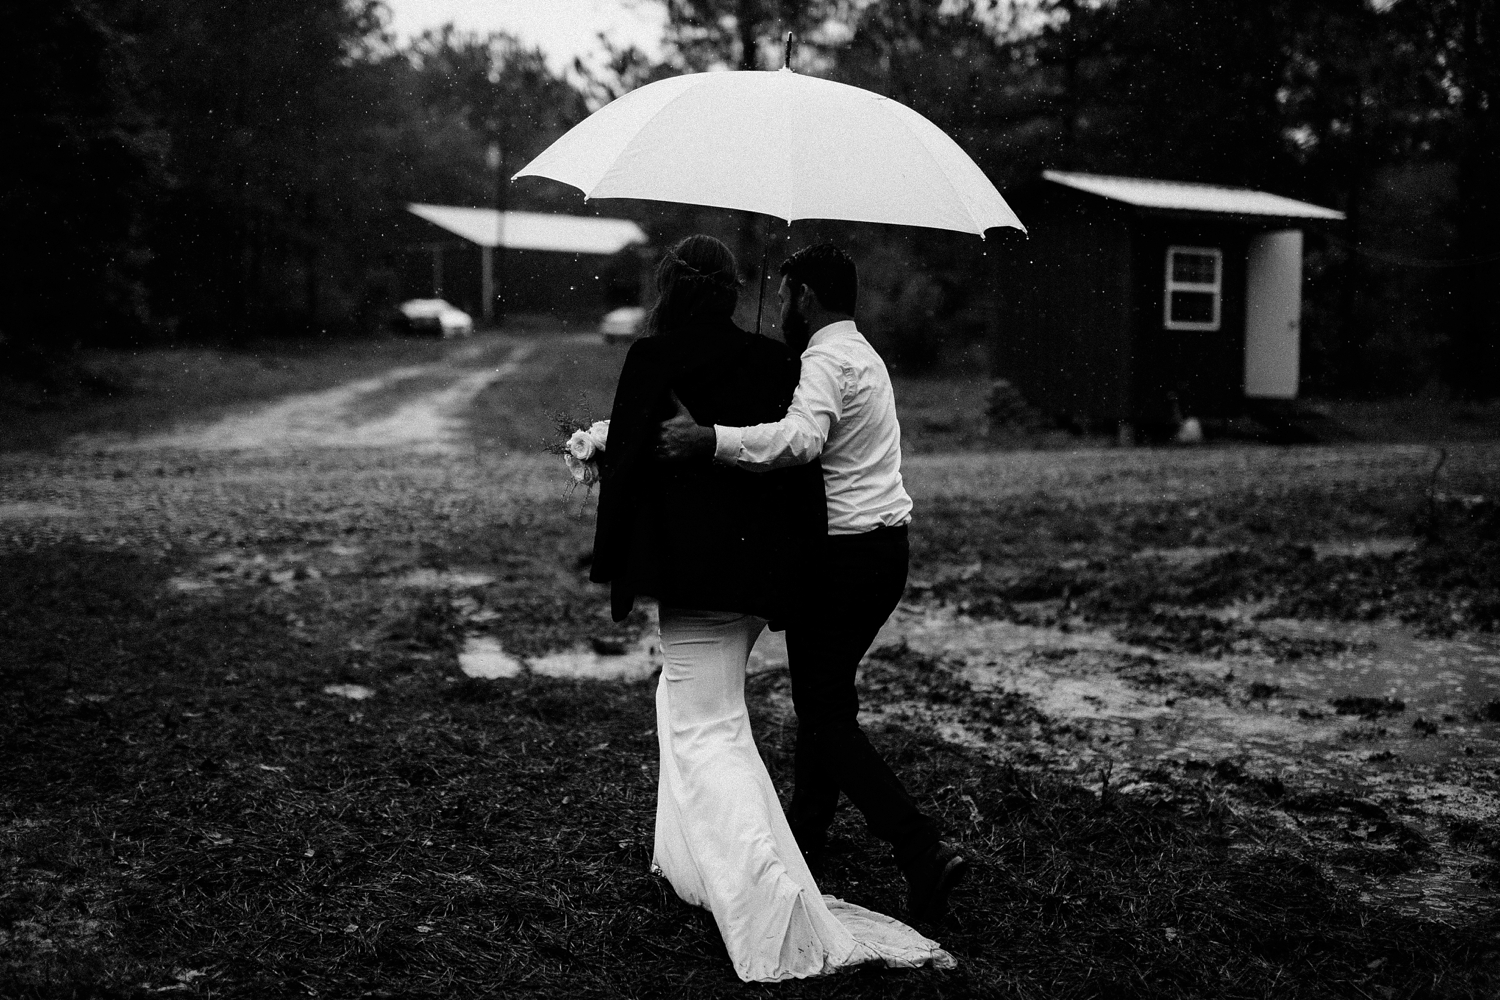 rainy-wedding-pictures-085